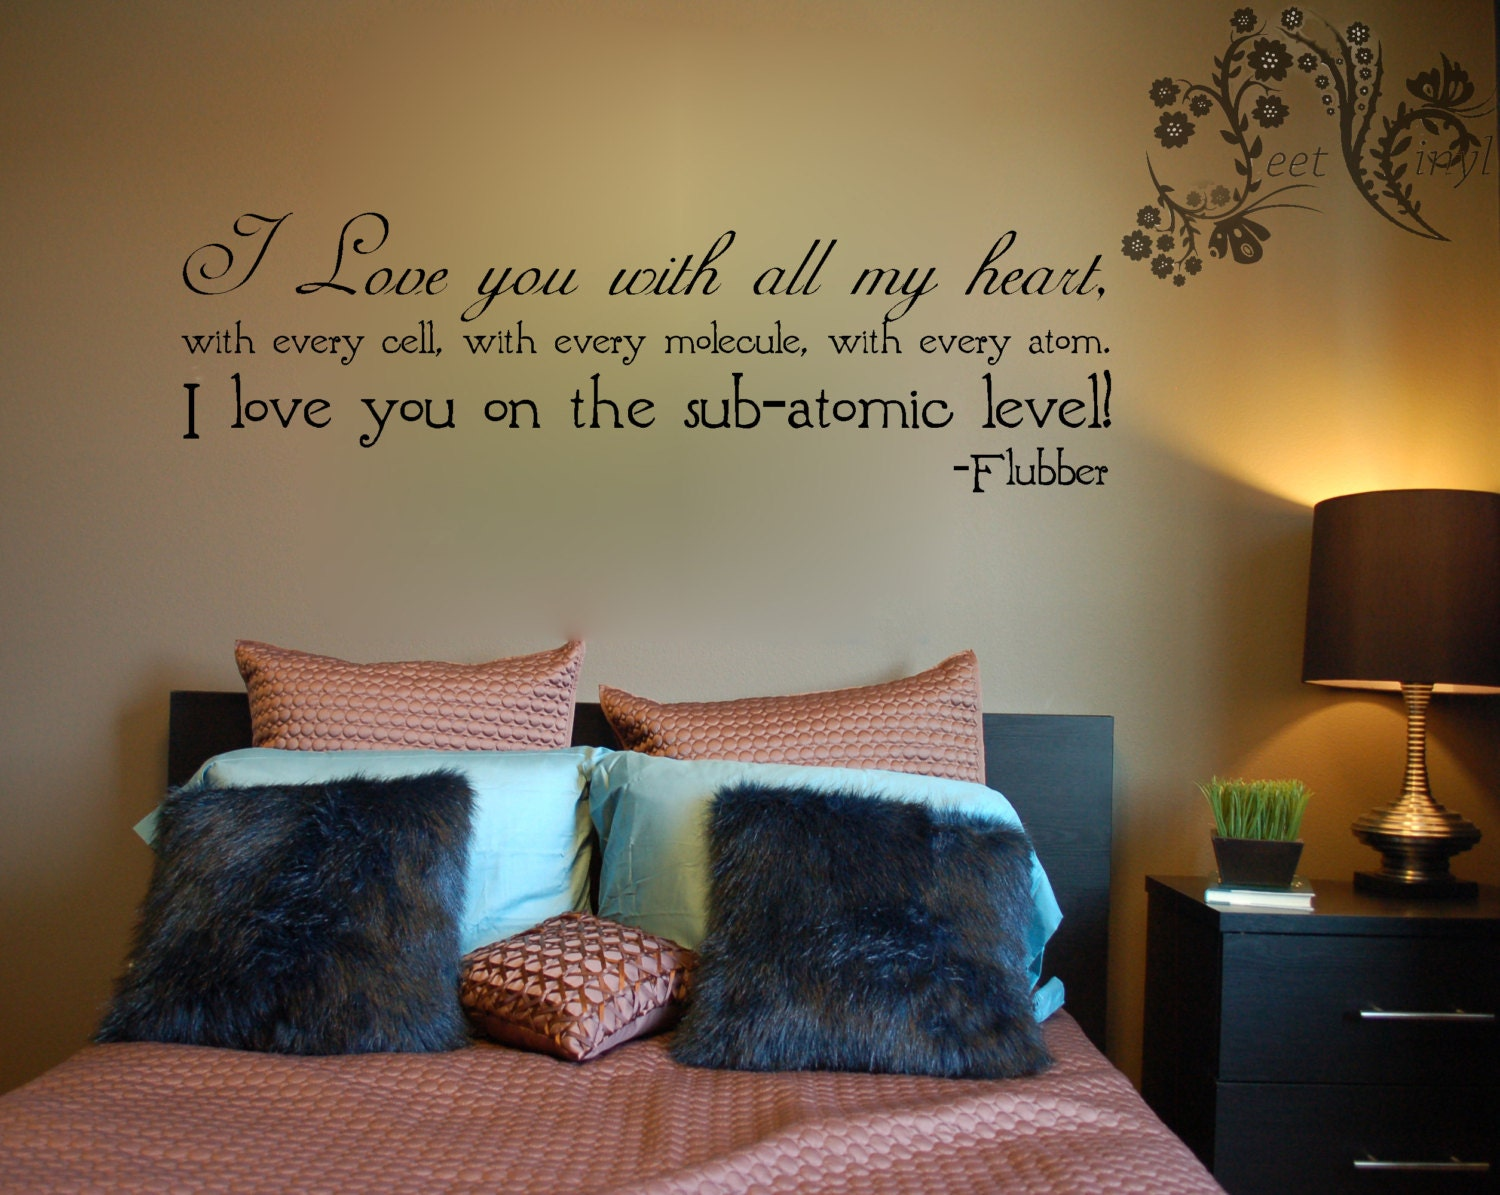 I Love You With All My Heart Vinyl Decal Wall Vinyl - Vinyl decals for the wall